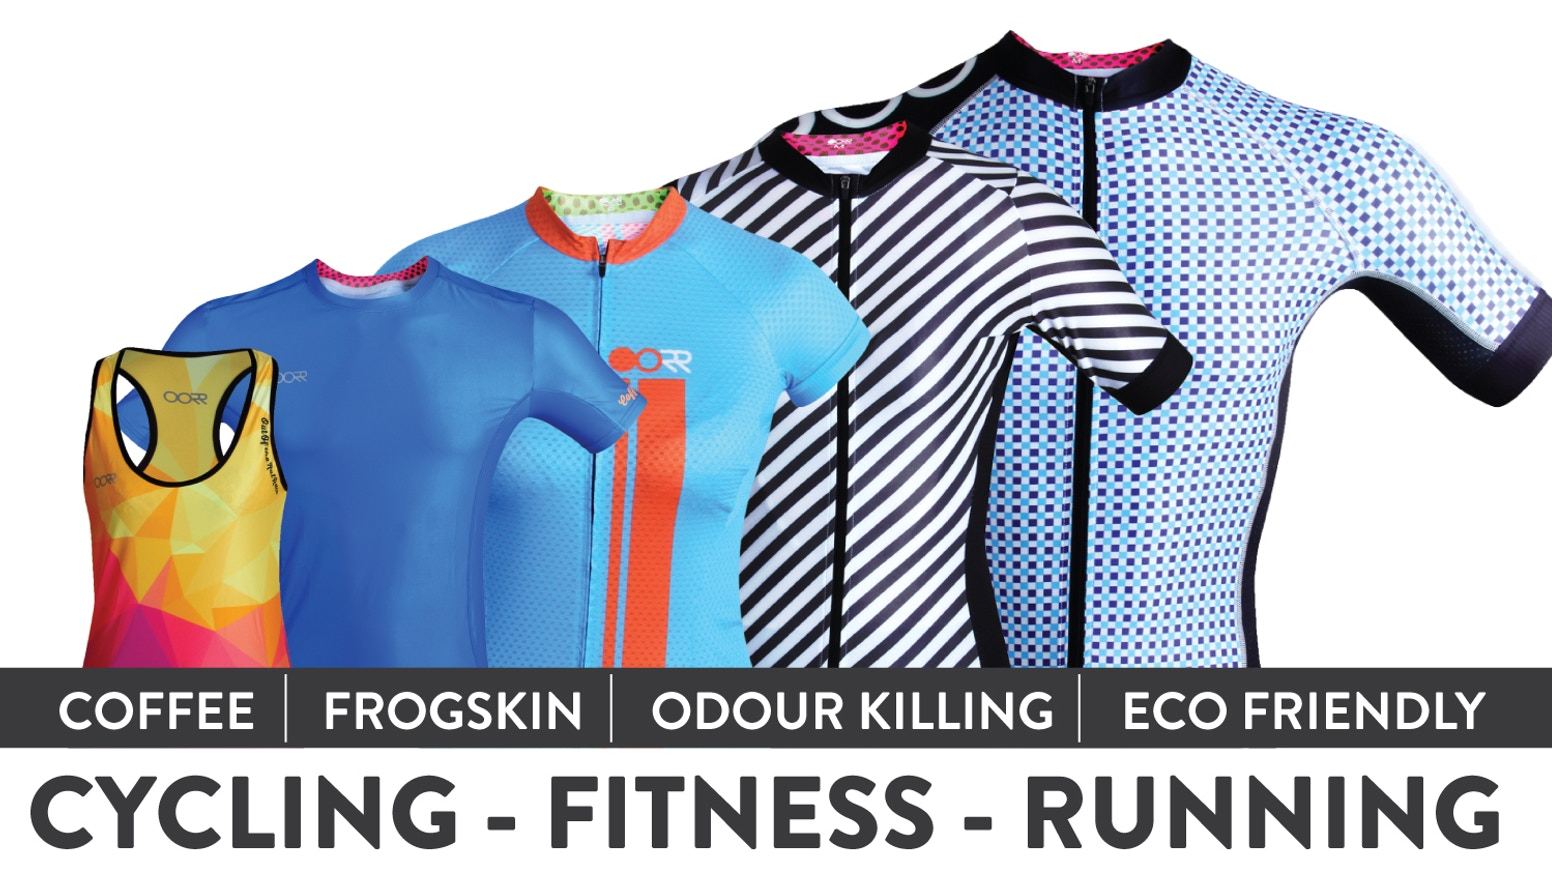 Fitness and Pro Cycling Apparel Enhanced with Coffee. Permanent Odour Control. Eco Friendly.